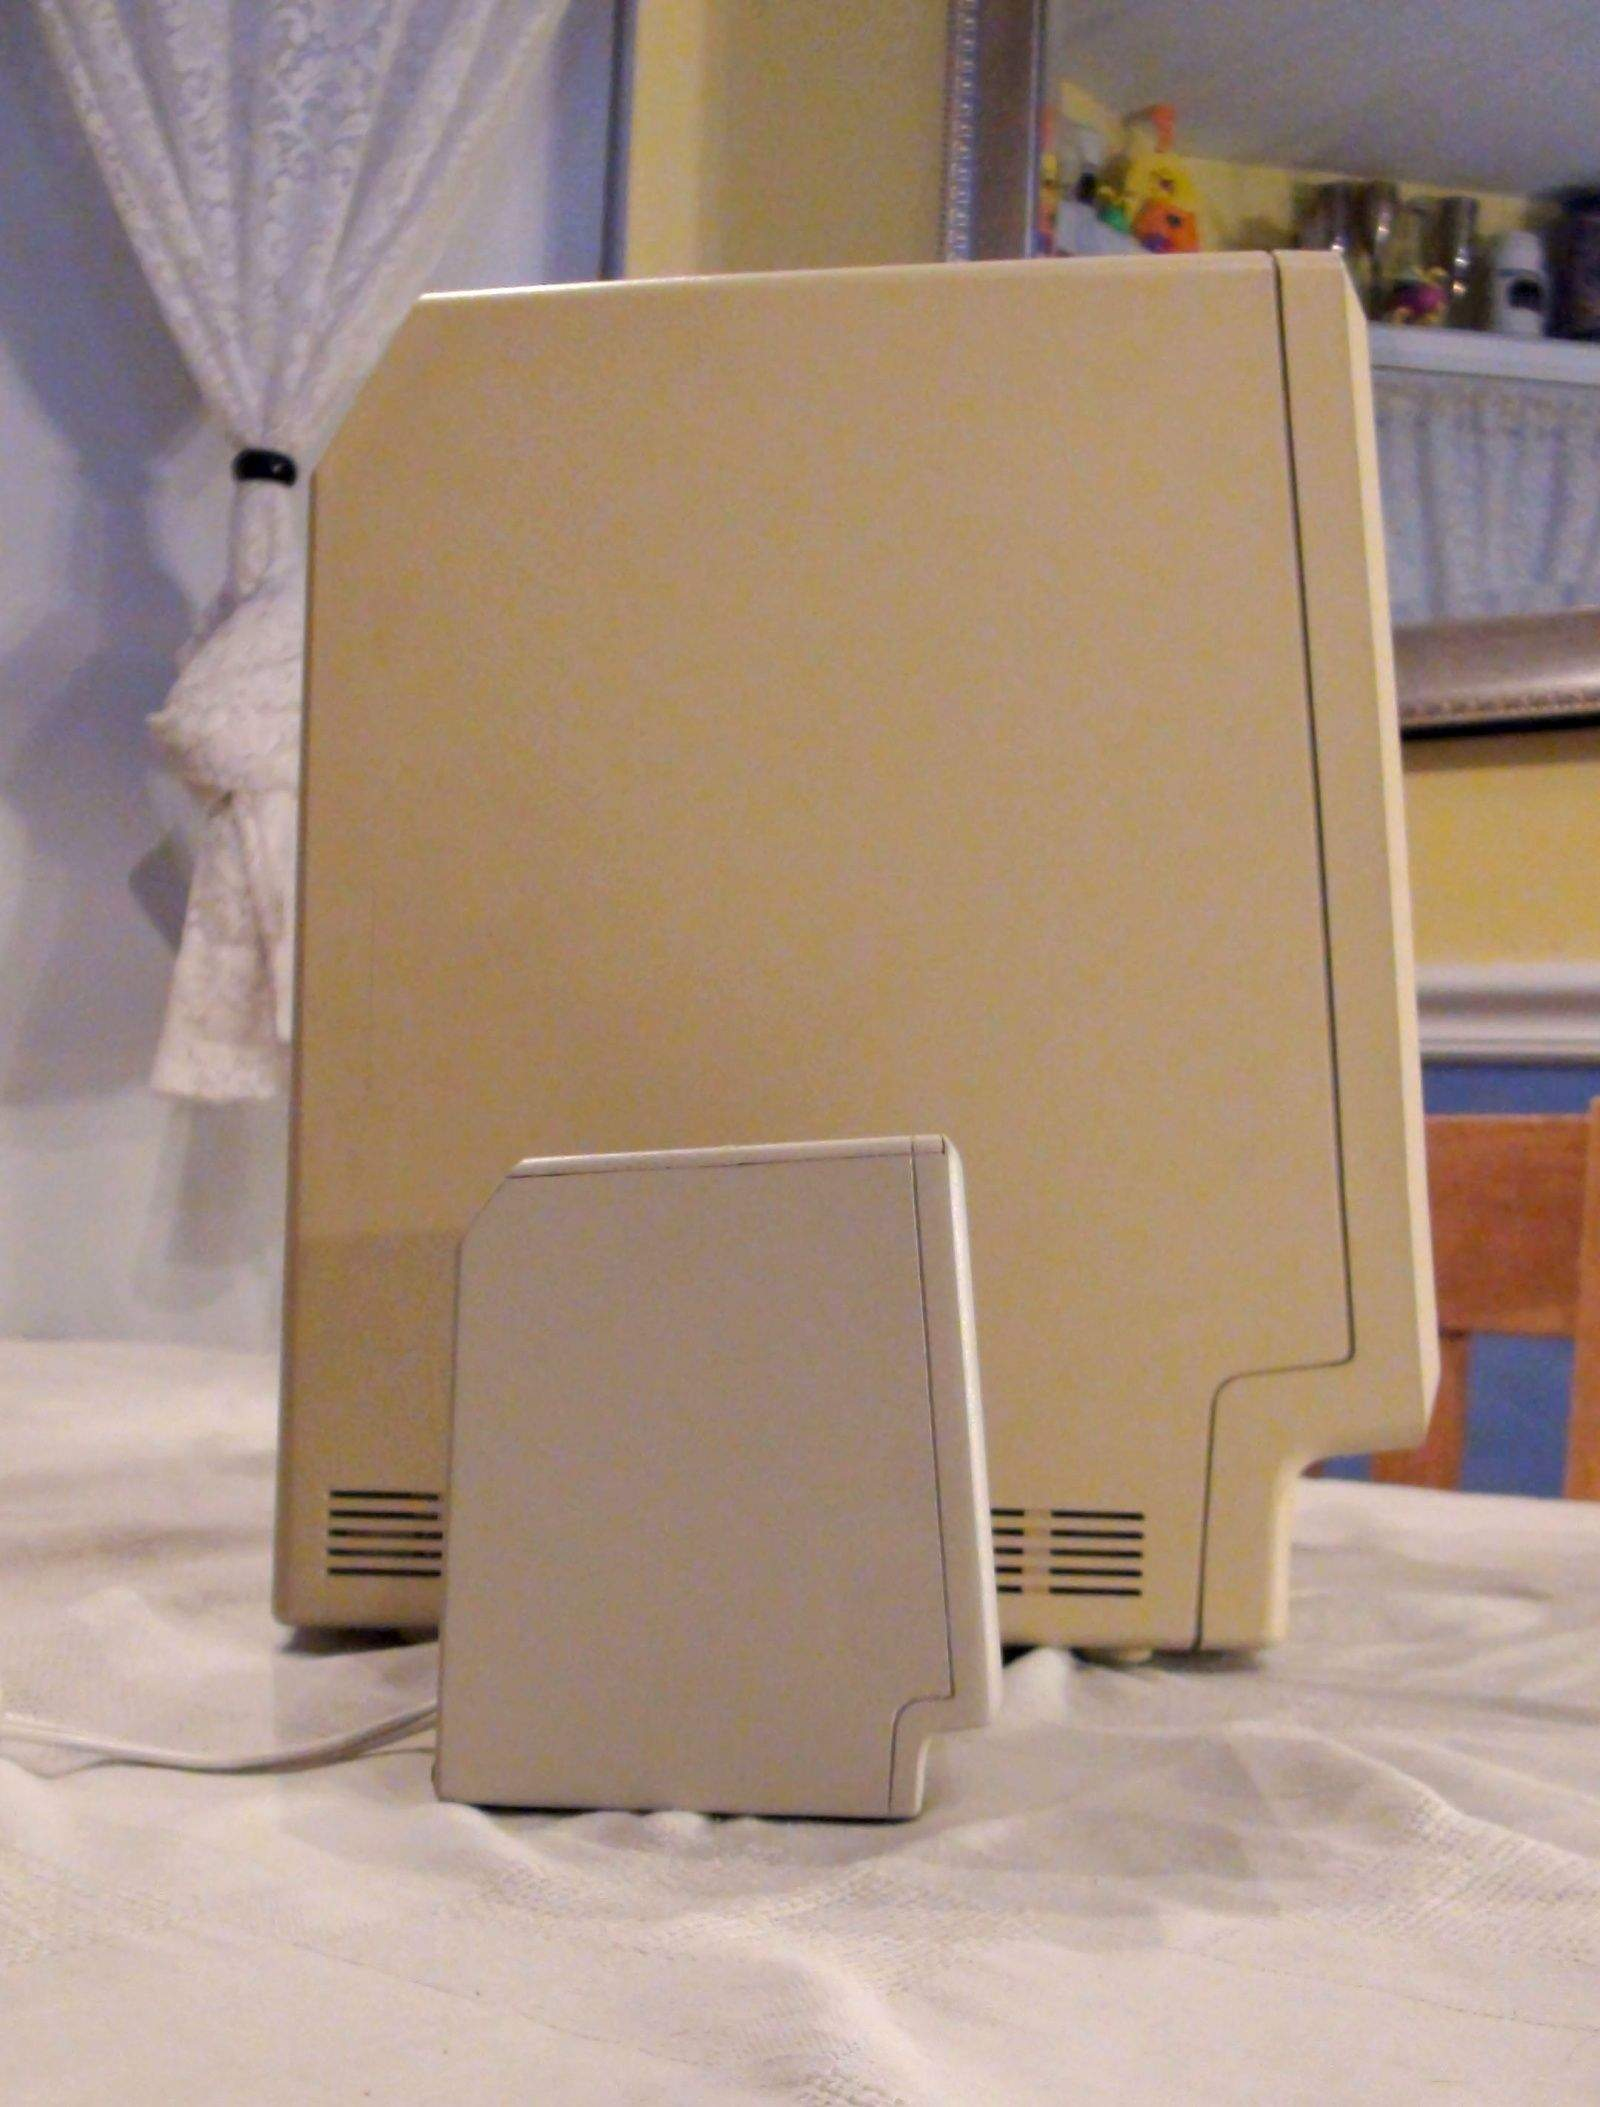 Profile View of Mini Mac